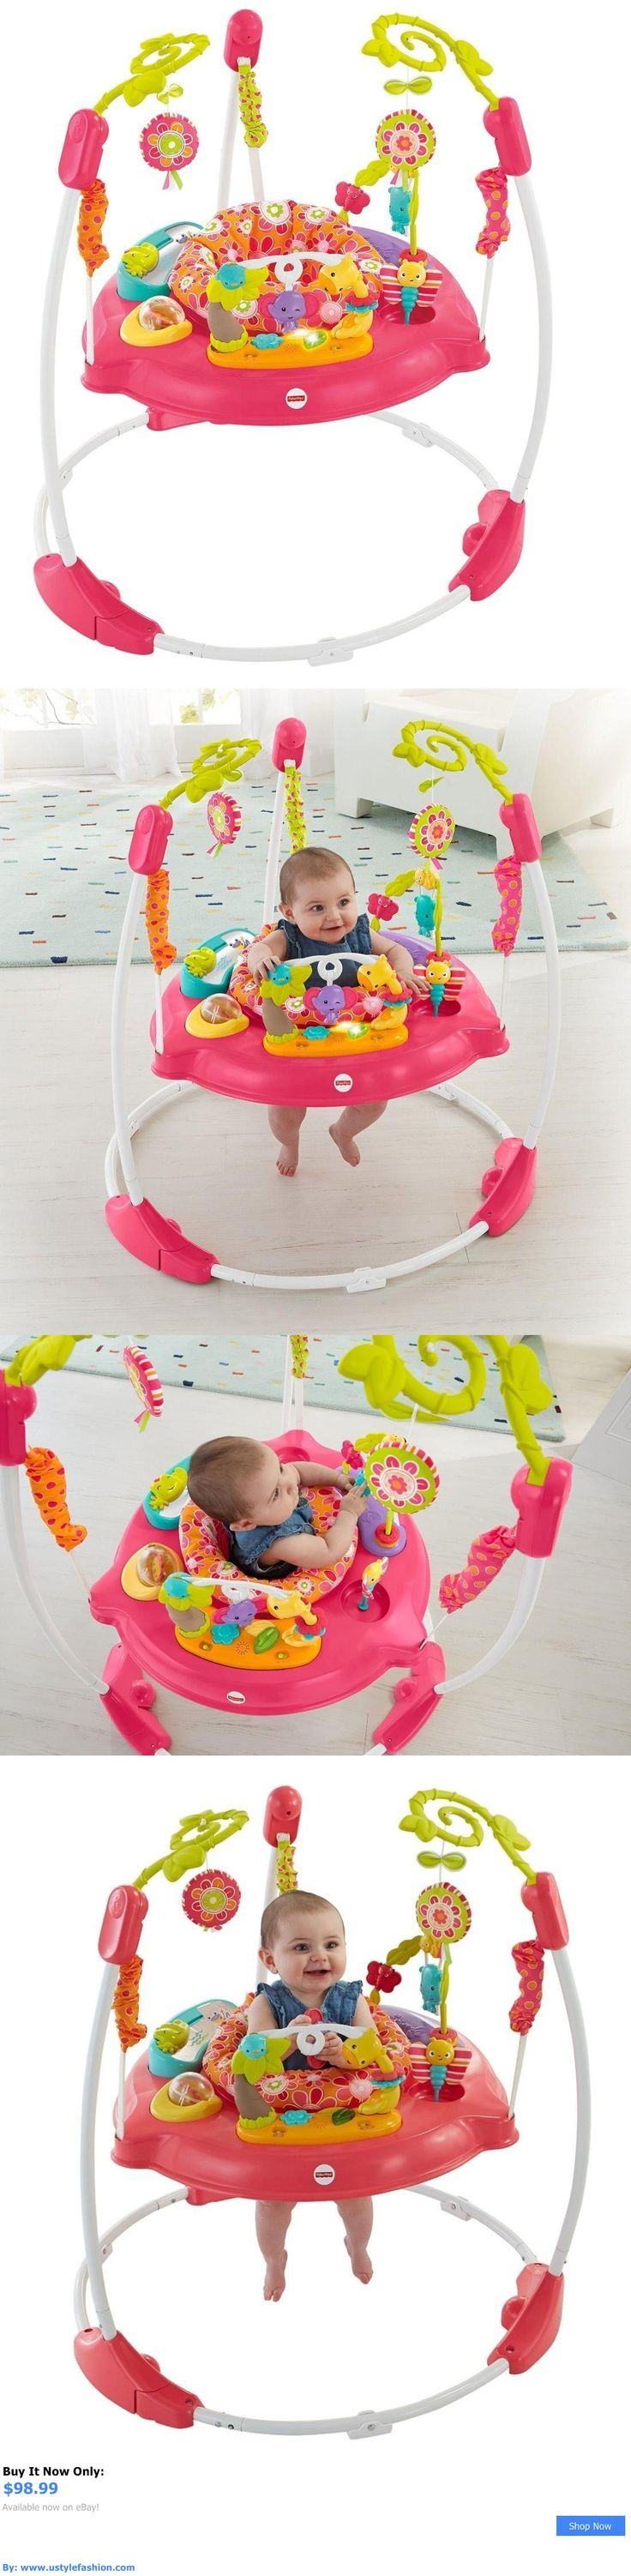 Best 25+ Bouncers ideas on Pinterest | Bouncer for baby ...